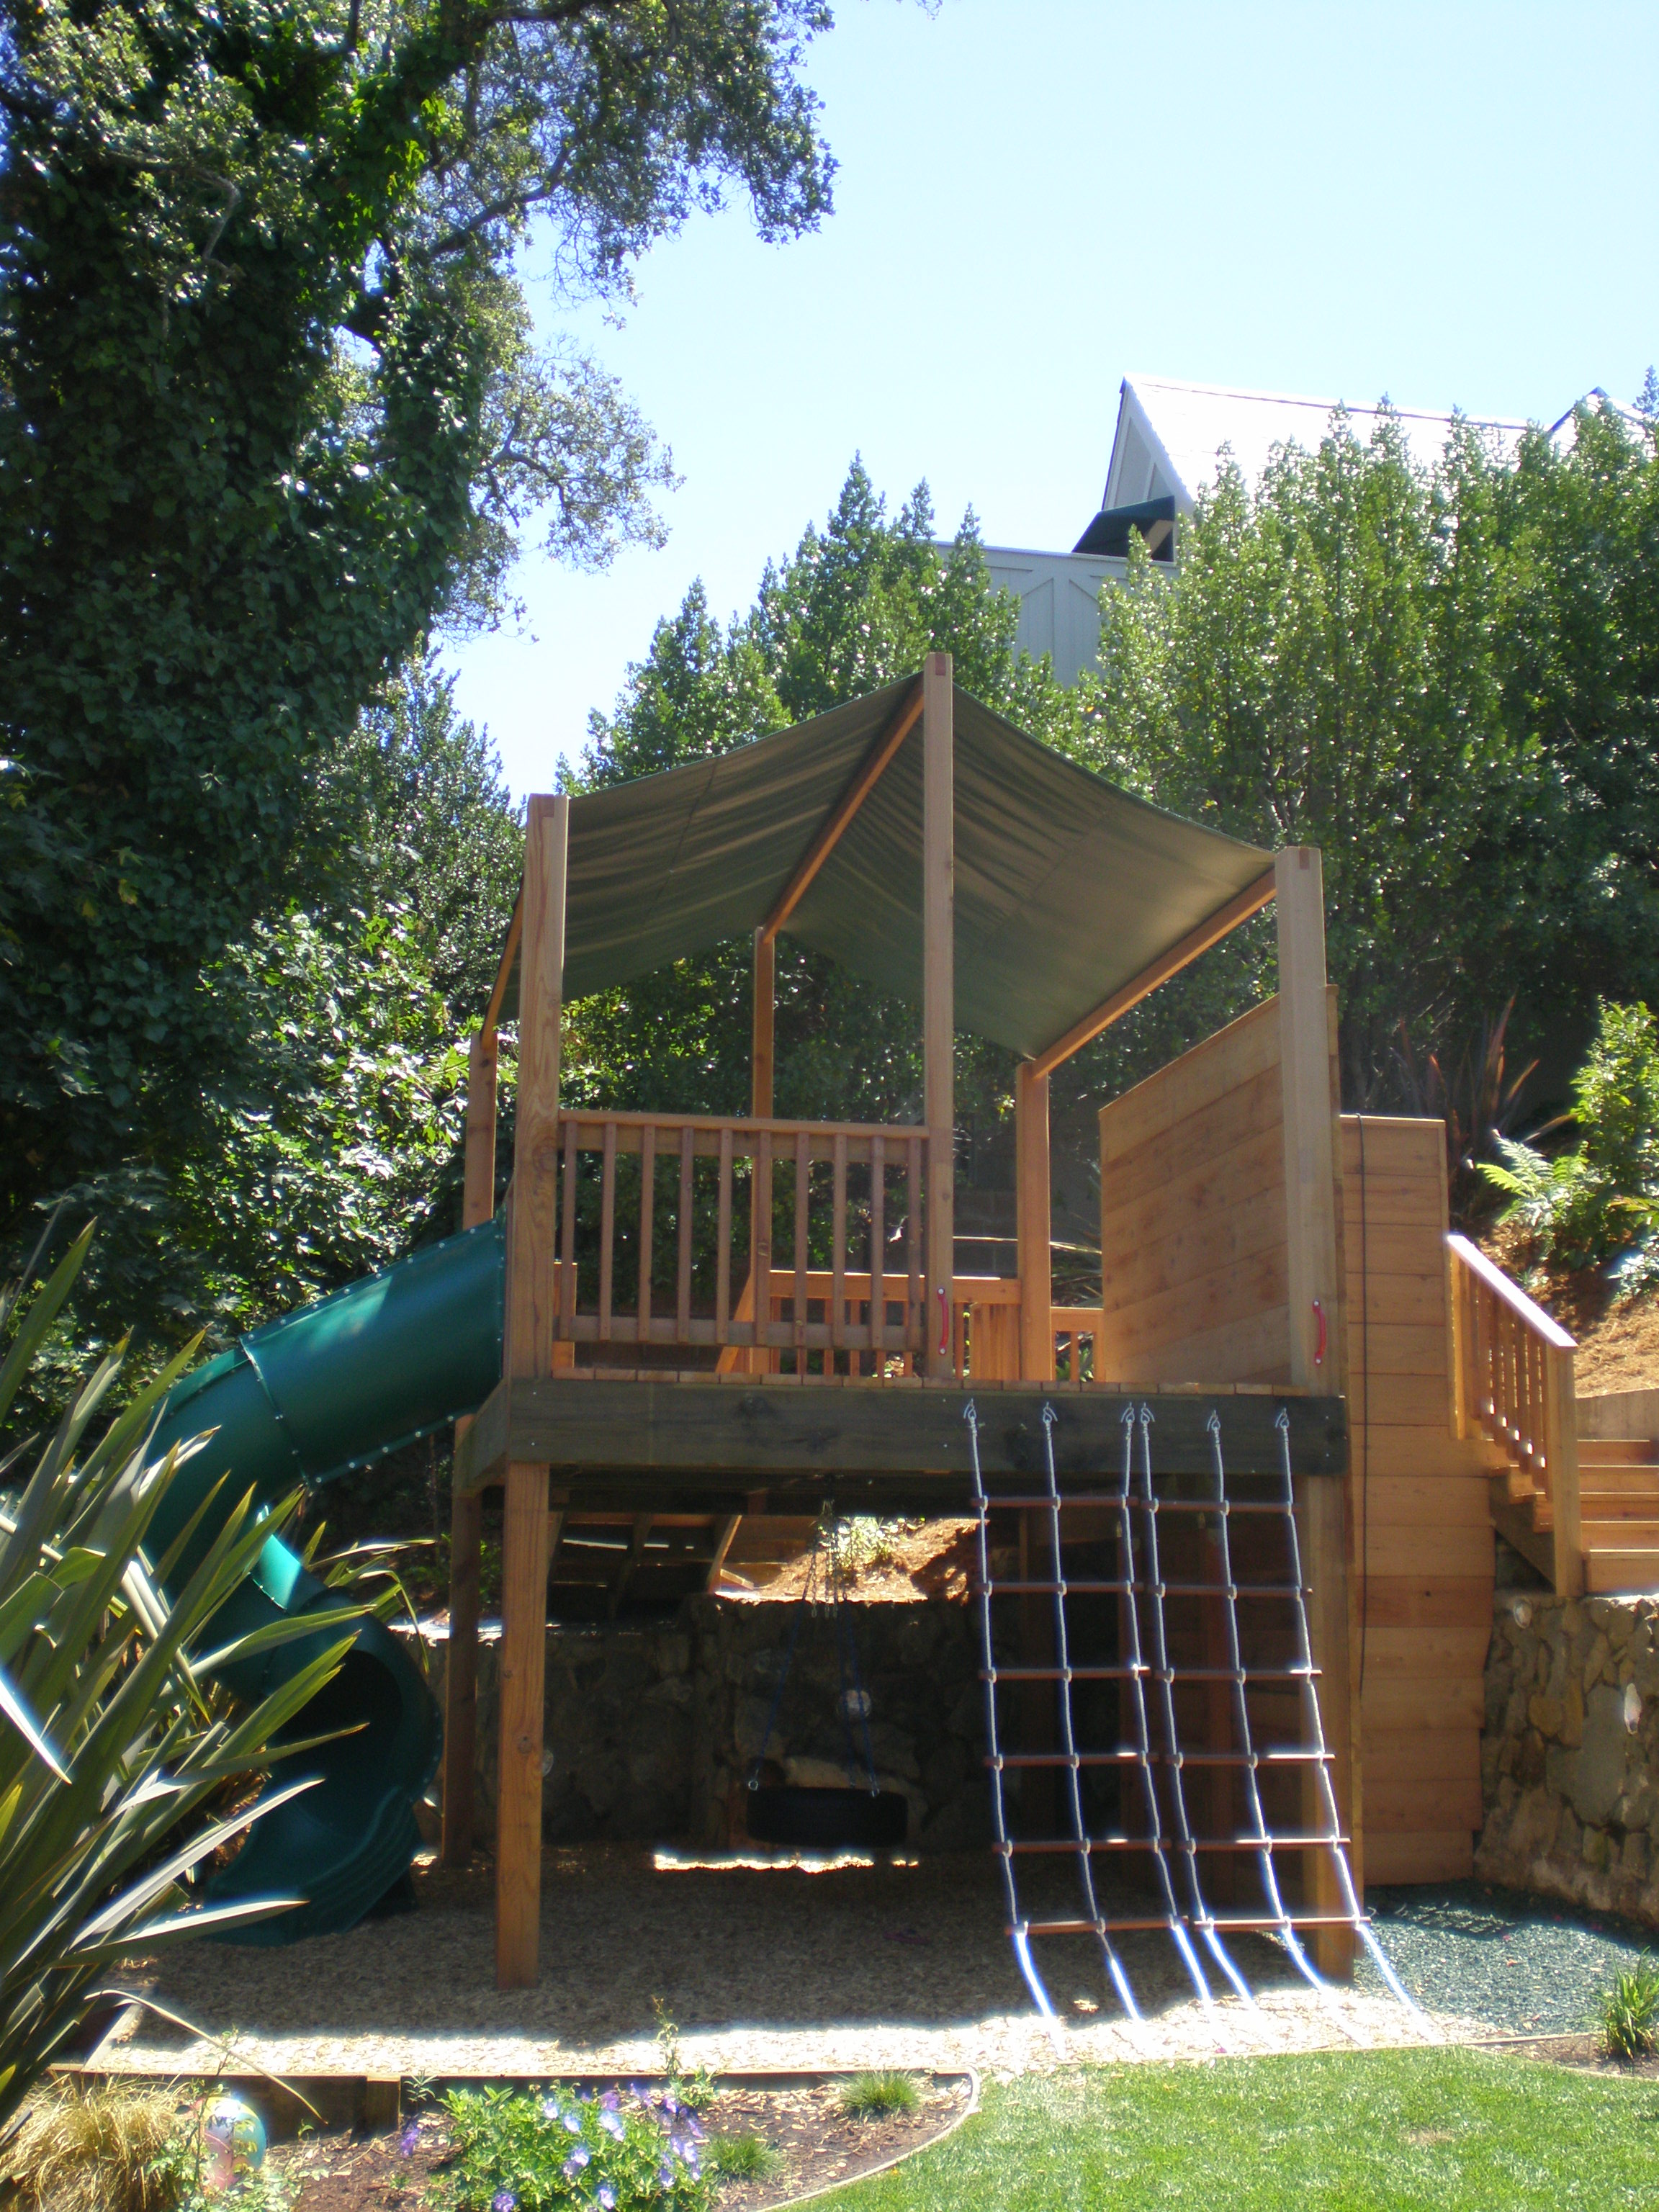 Playgrounds rule for Diy play structure